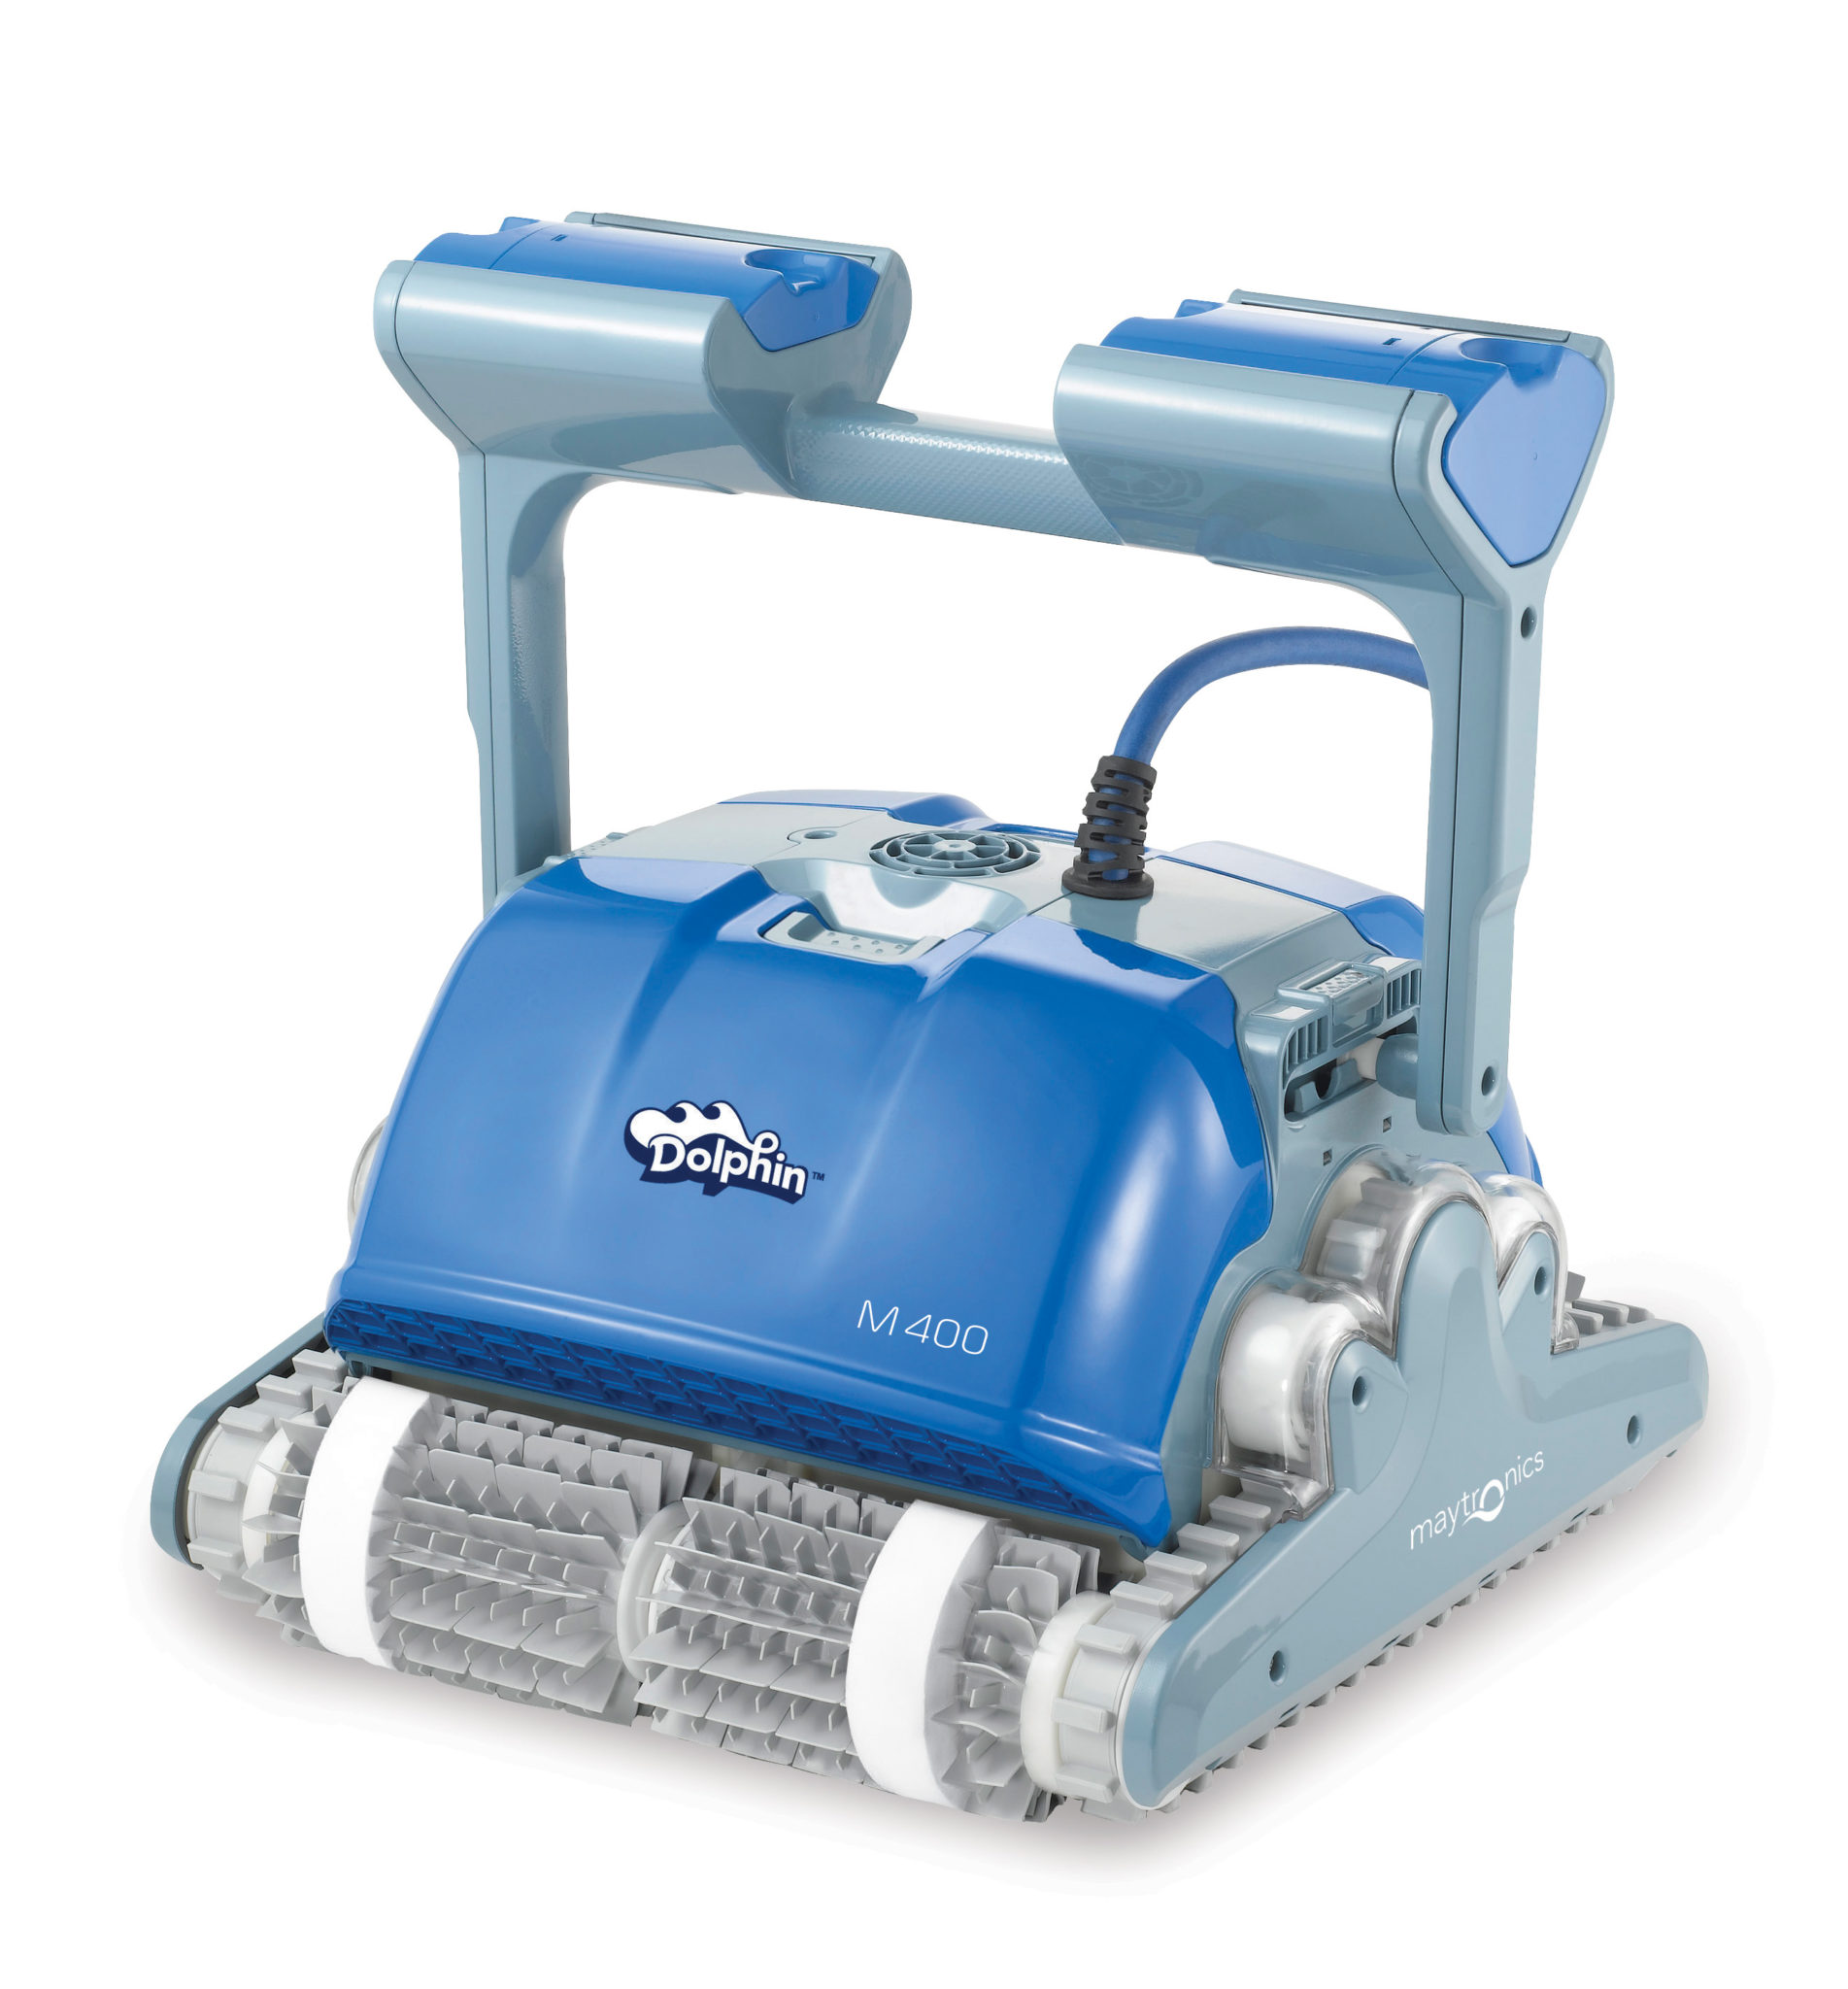 Maytronics Dolphin M 400 Pool Cleaner